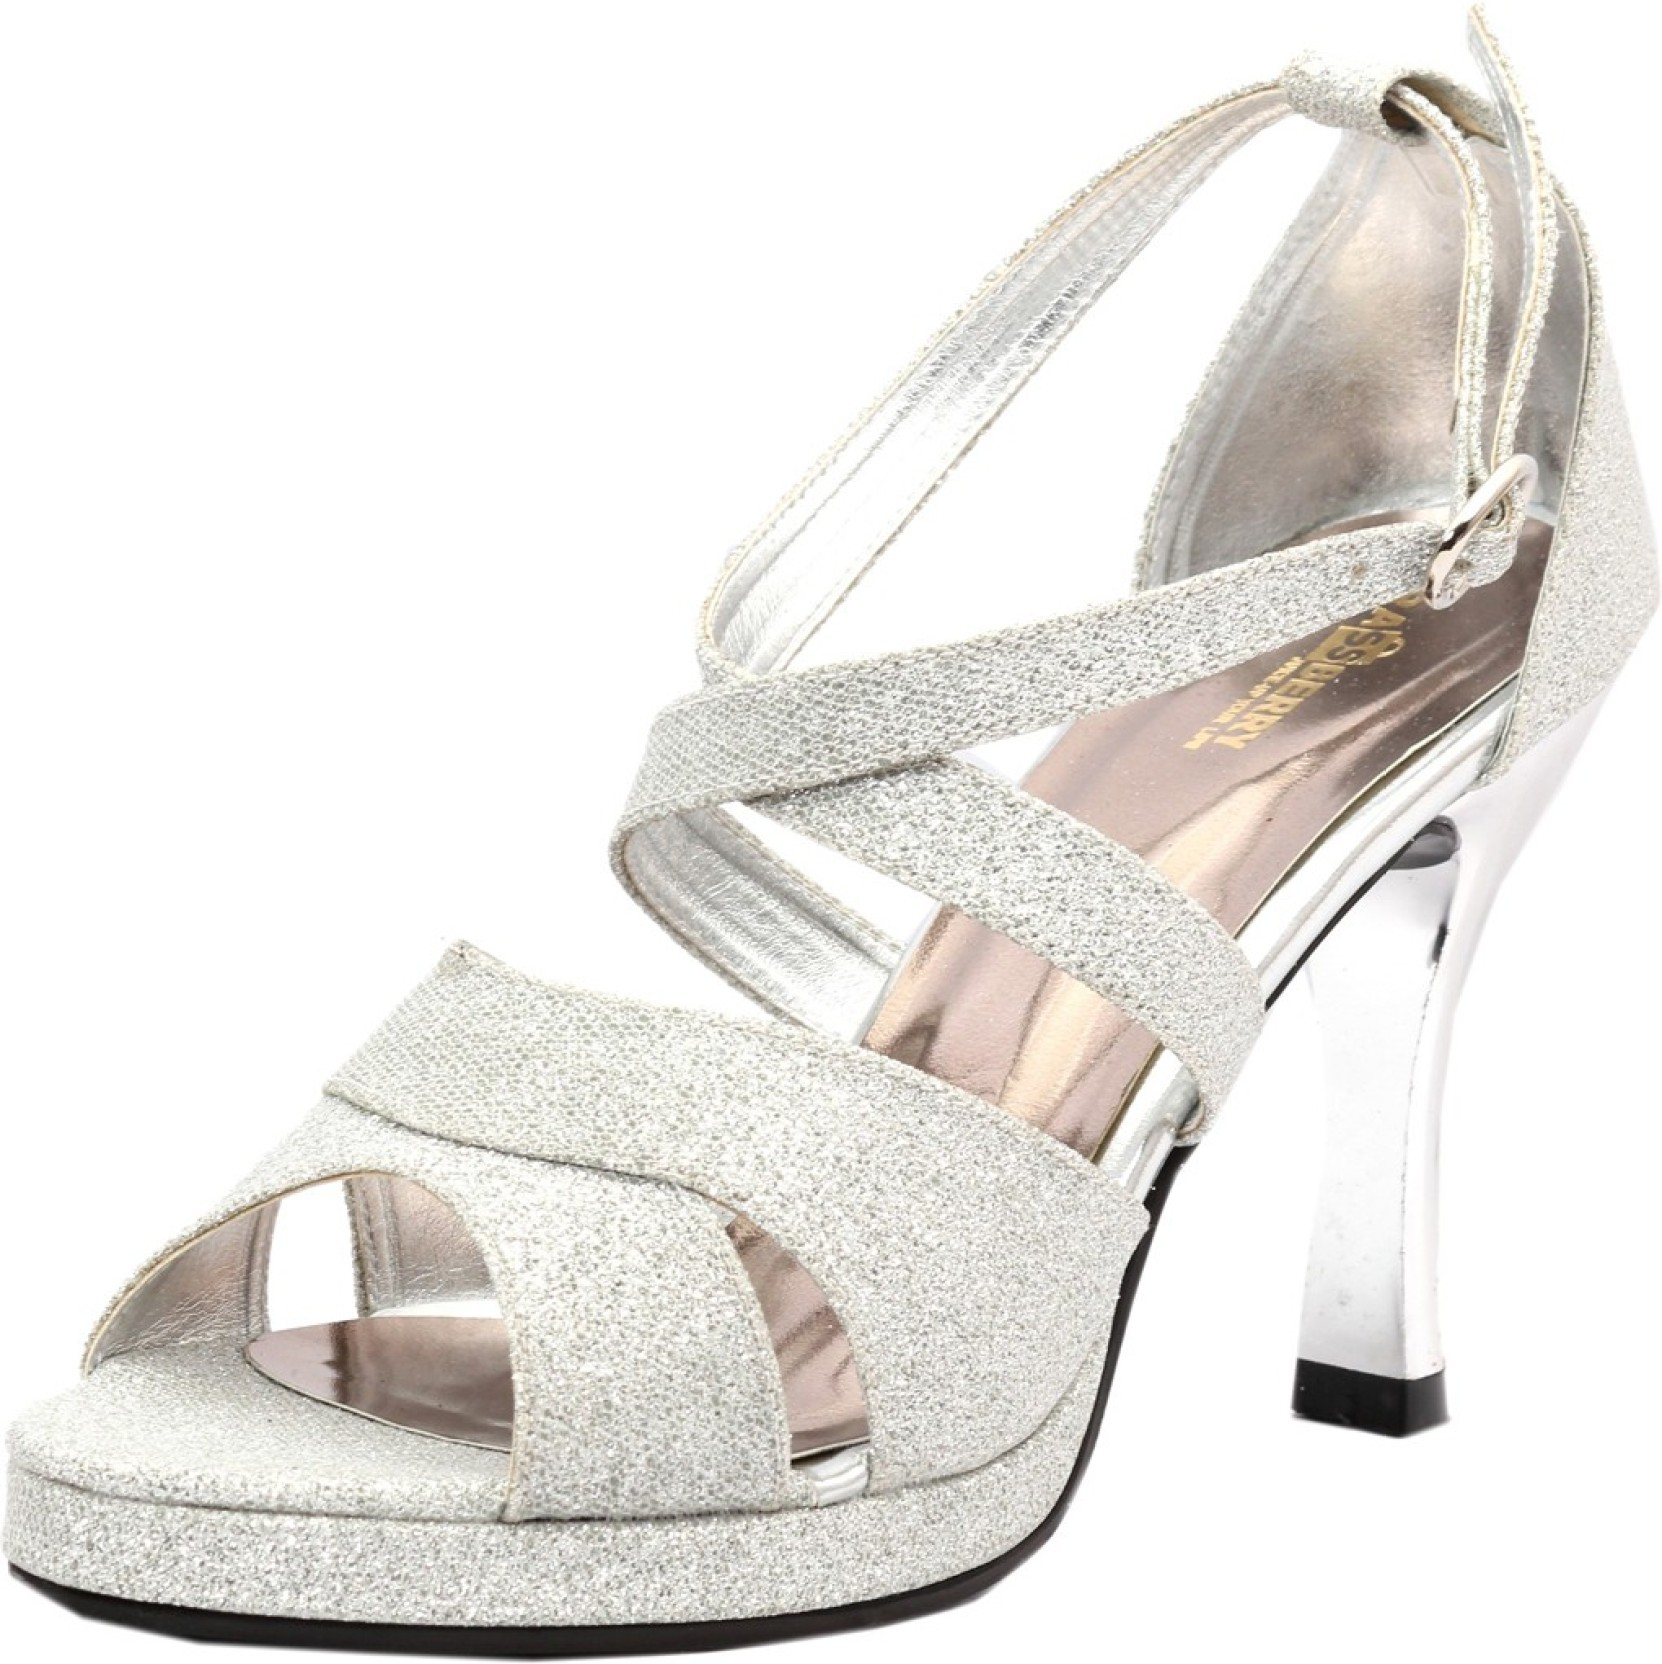 623ede5fce8 Rassberry Women Silver Heels - Buy Silver Color Rassberry Women ...